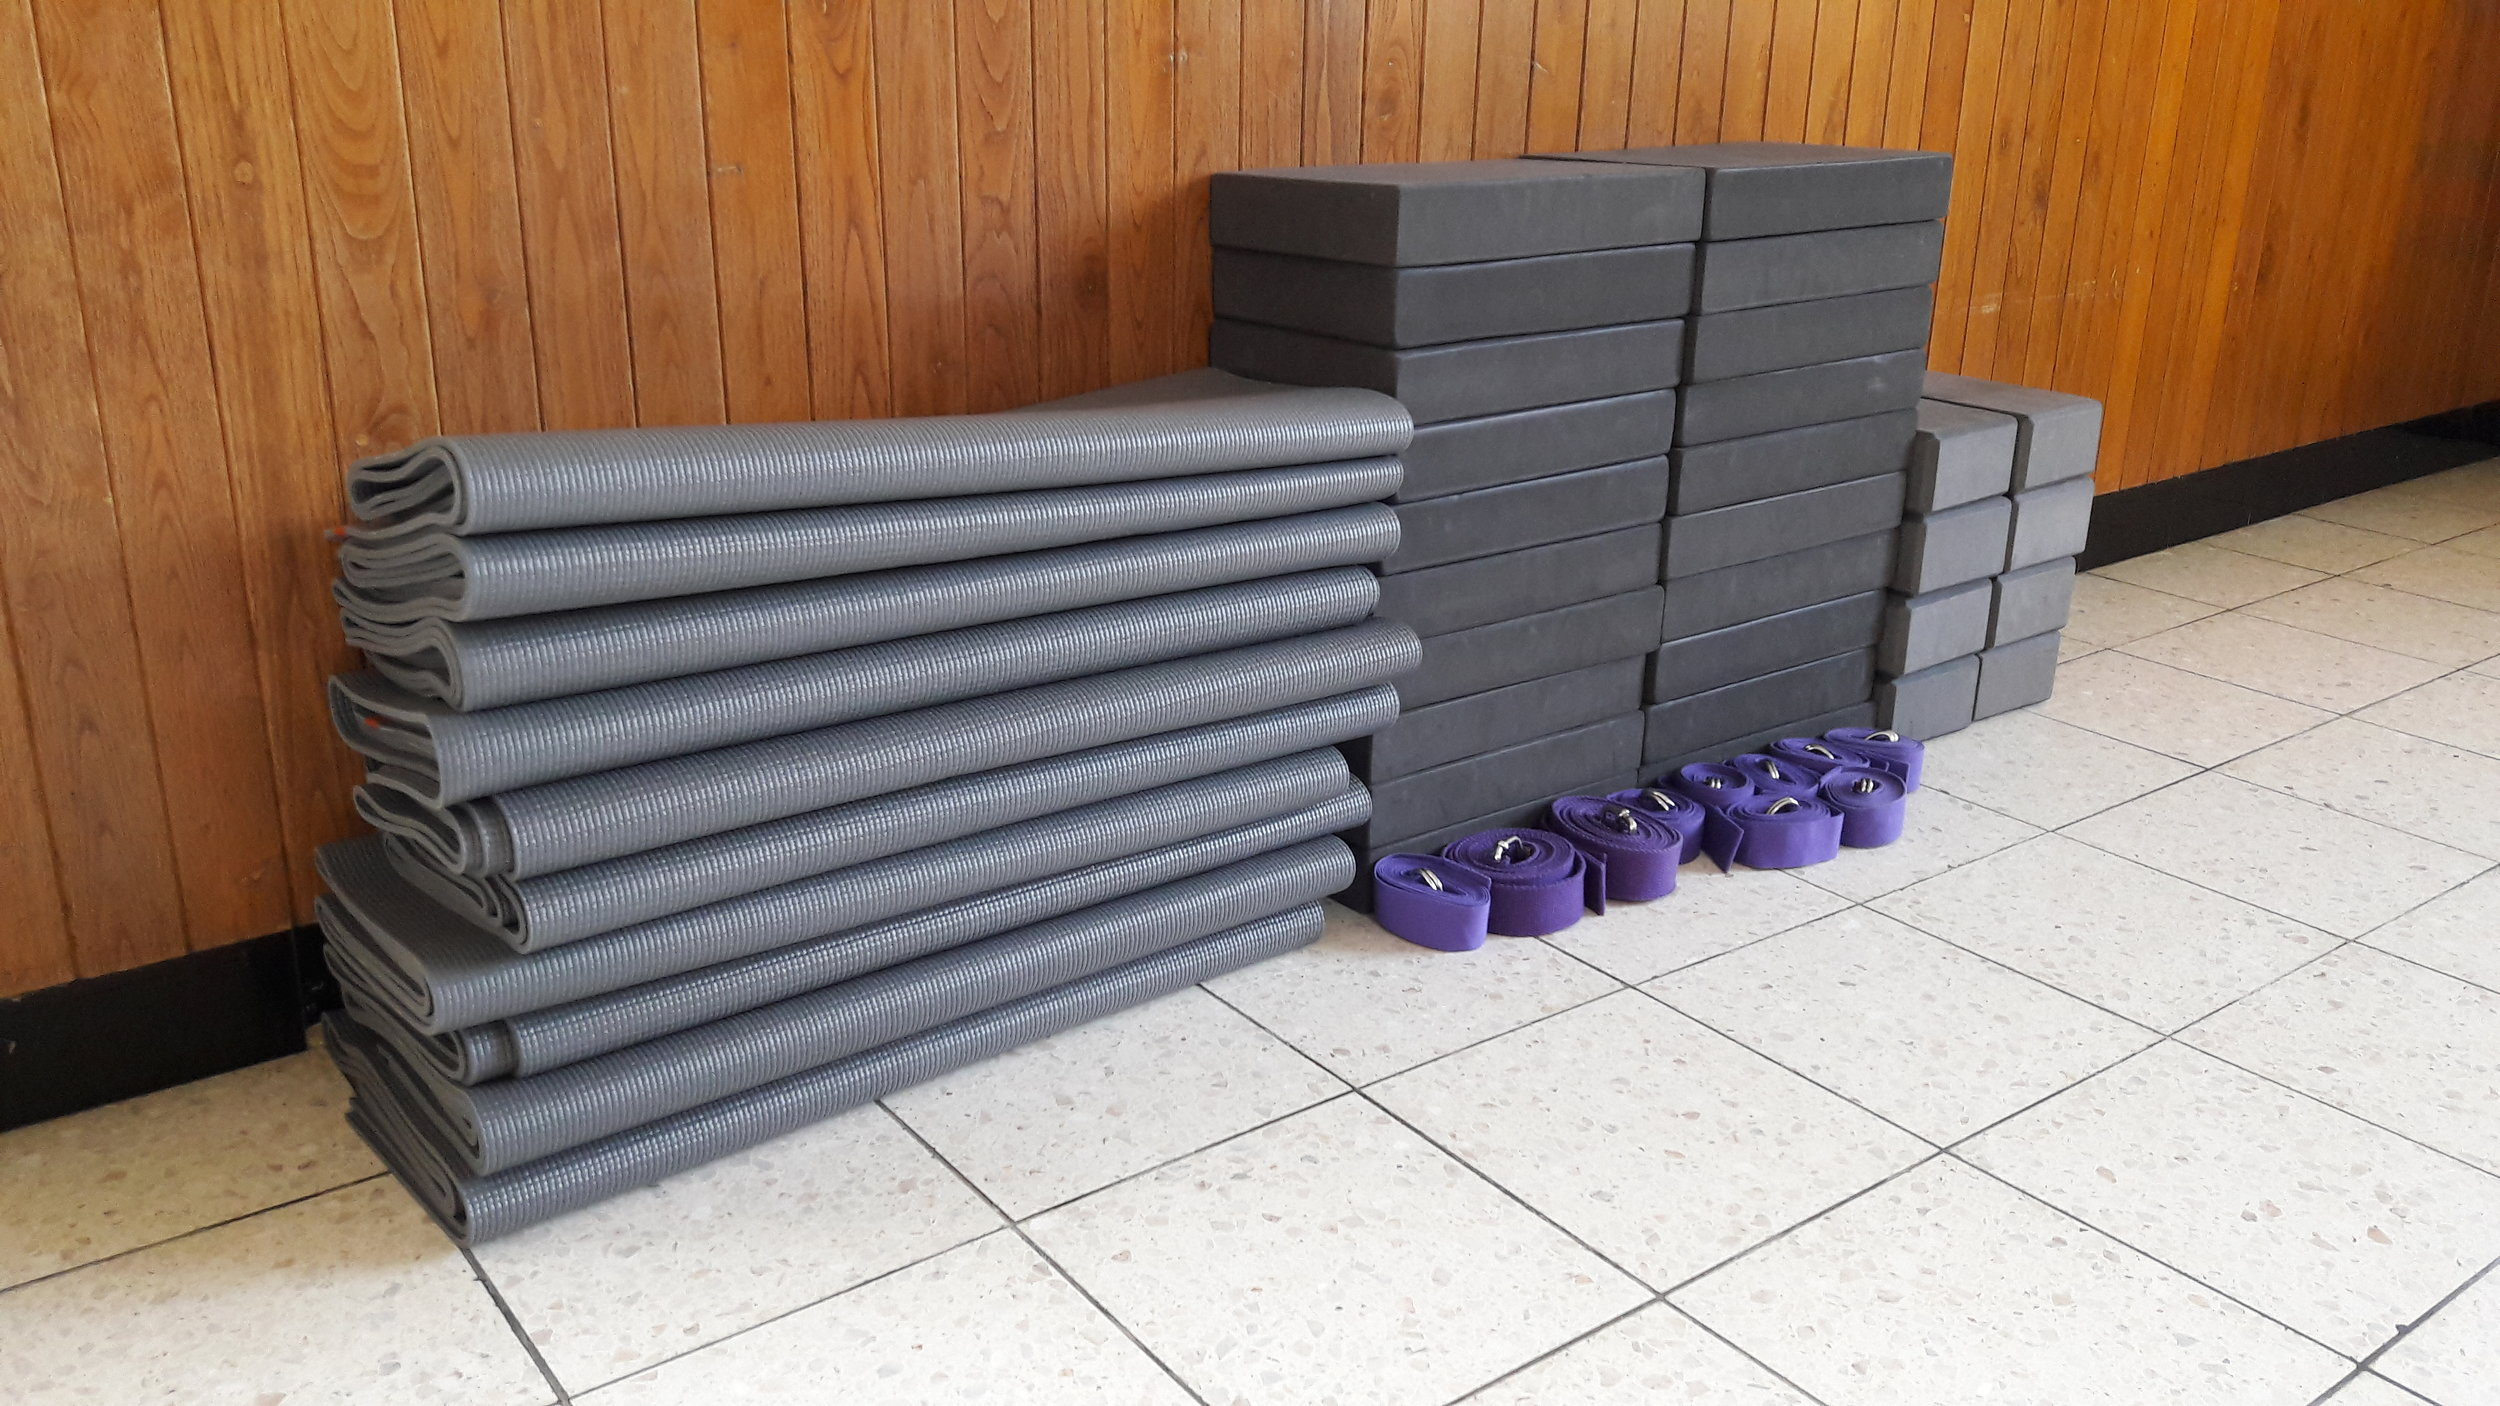 Yoga mats, blocks and belts /  Tapis, blocs et ceintures de yoga